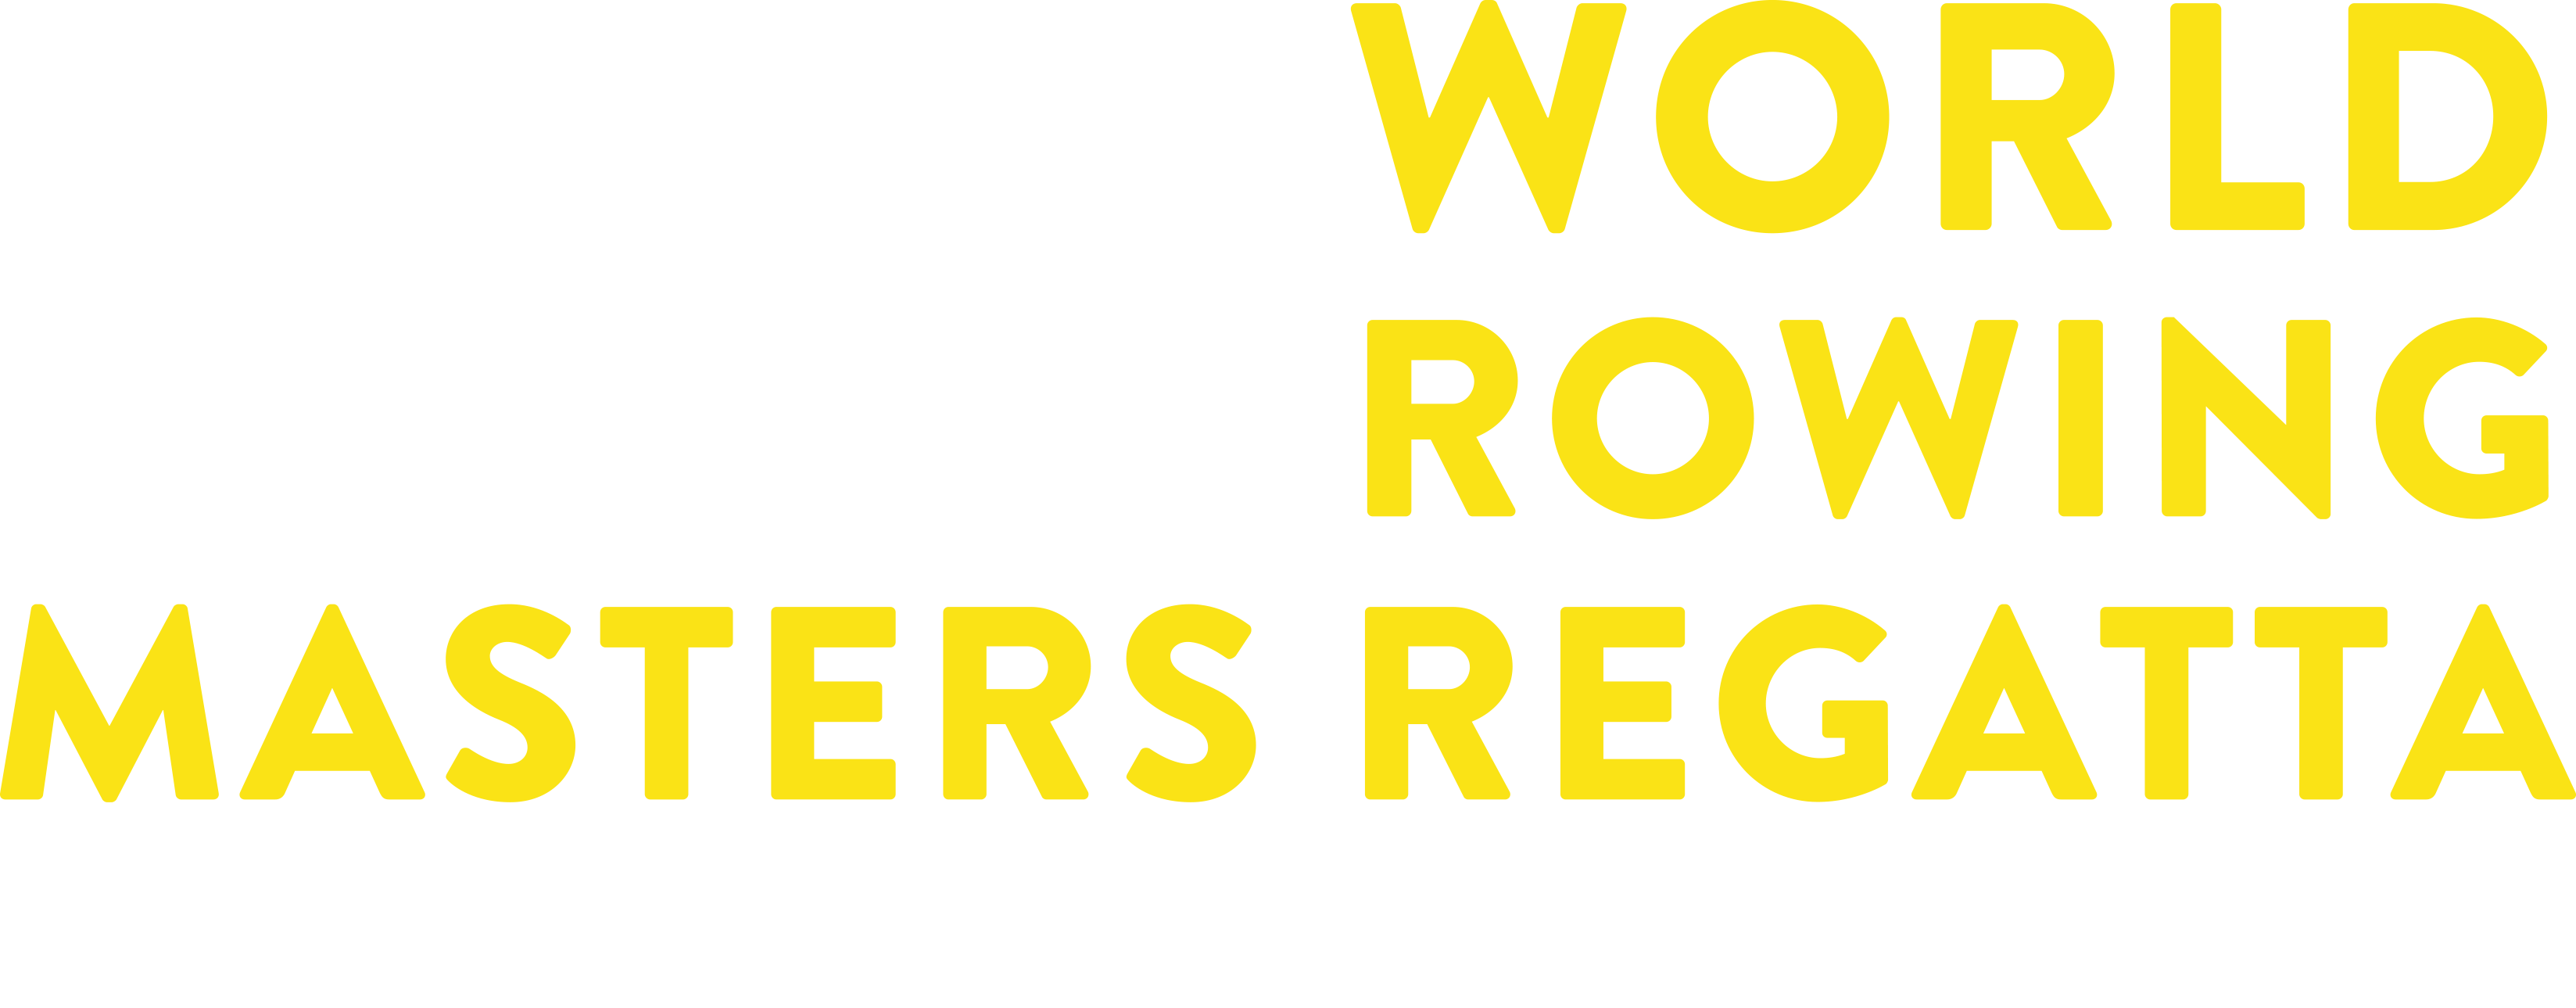 2020 World Rowing Masters Regatta